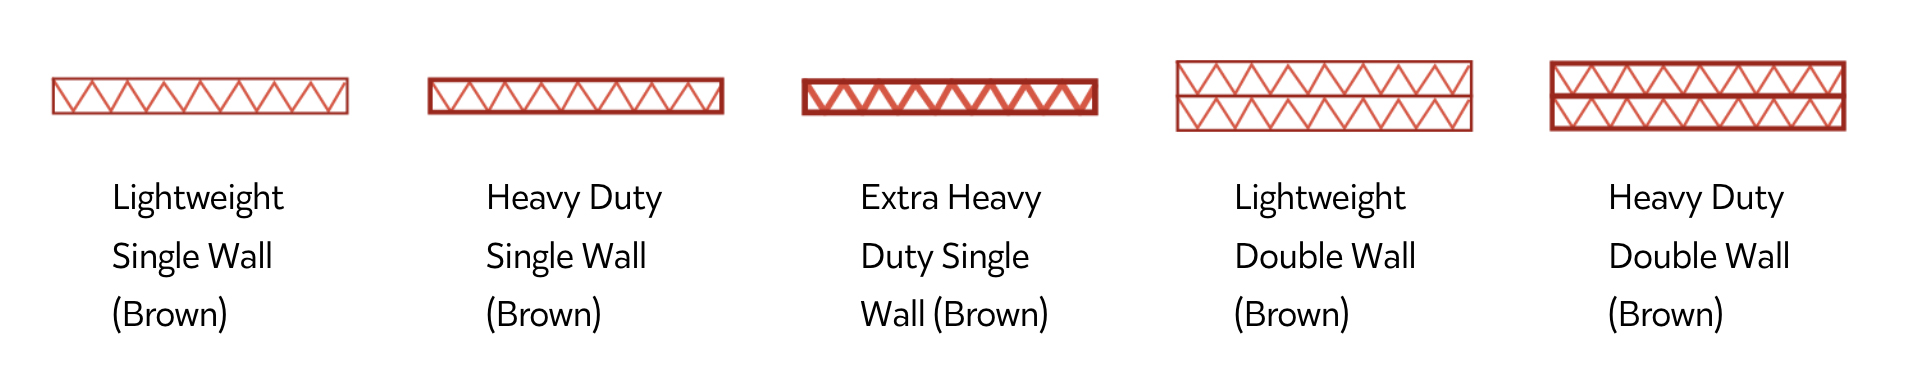 Wall Thickness Chart - Brown